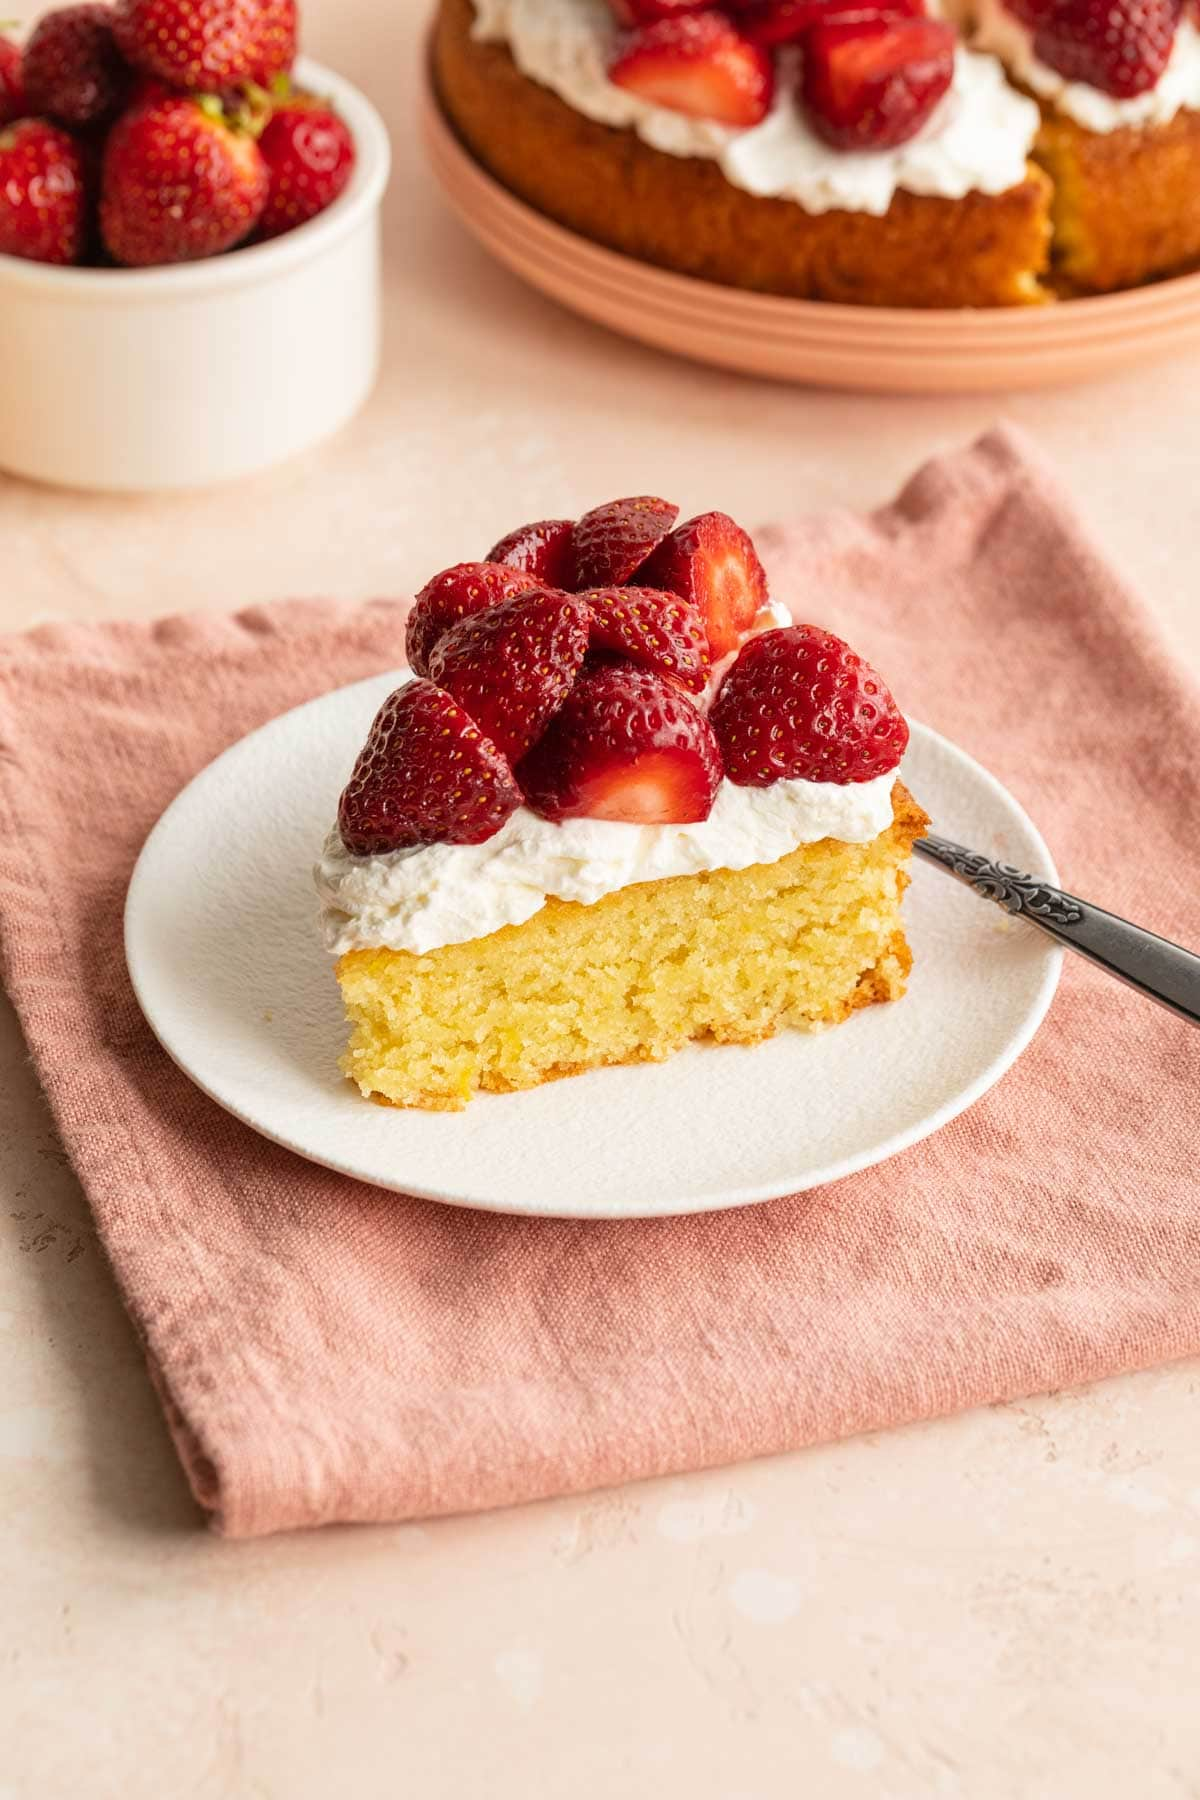 Slice of almond flour cake on a white plate and topped with strawberries and whipped cream.